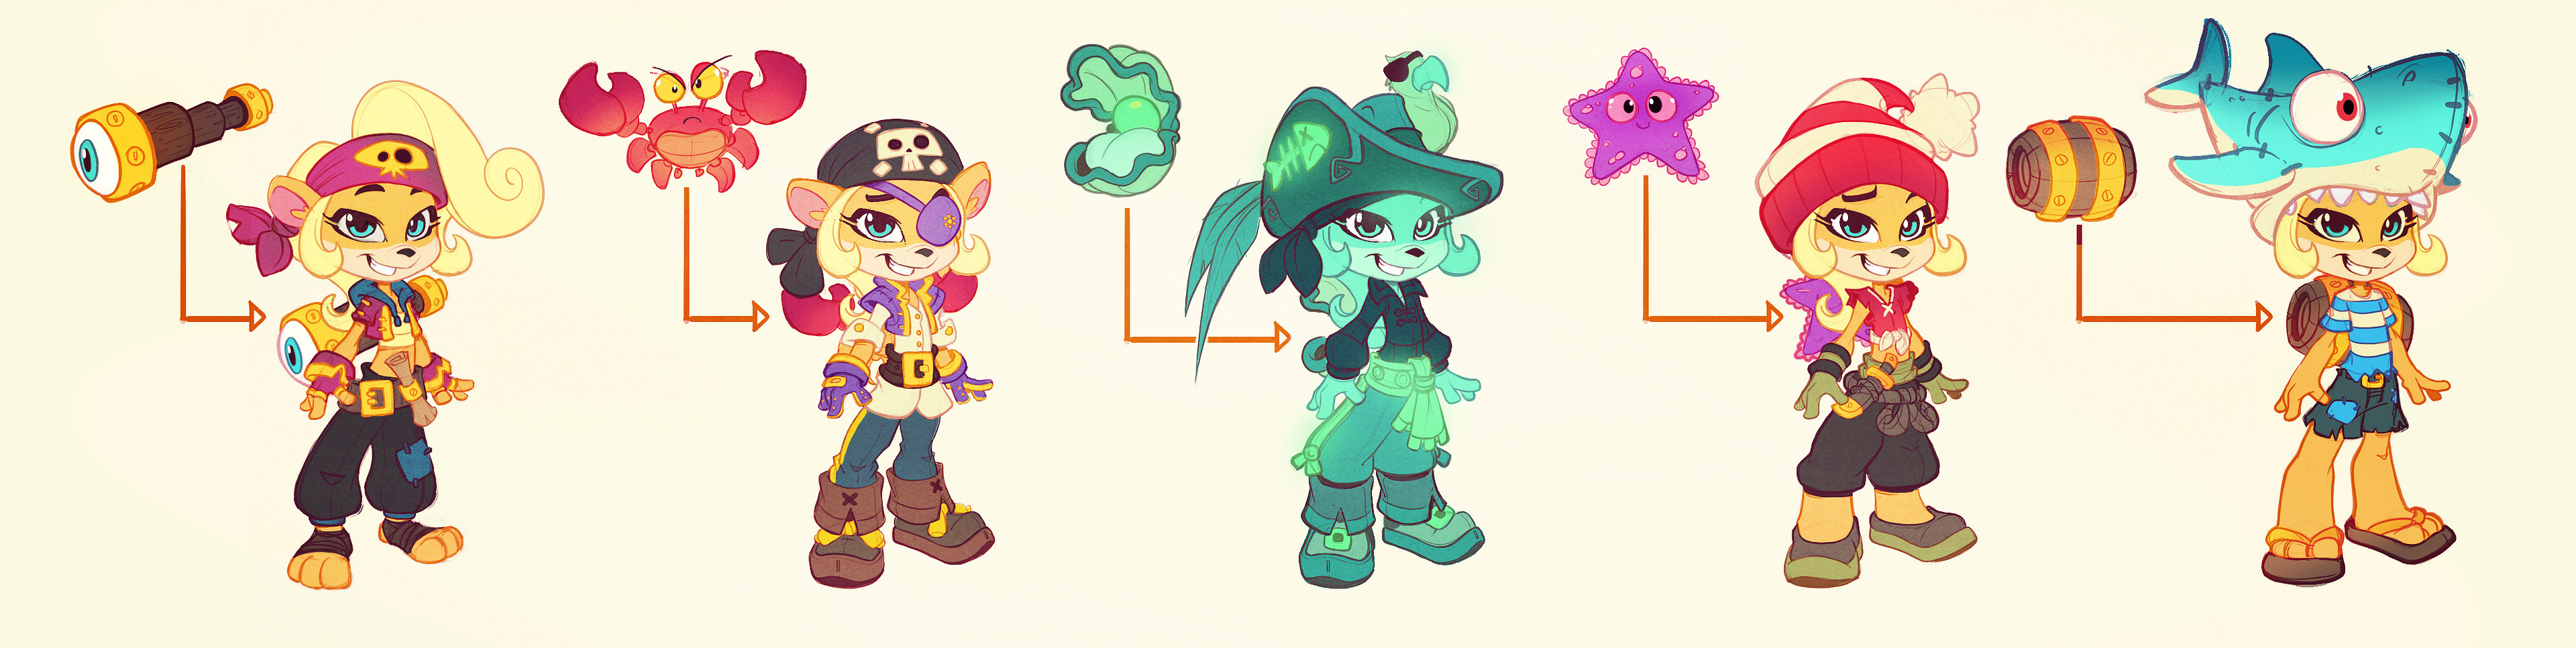 Early Cocoa pirate ideations, I'm a big fan of the shark hat to be honest lol.